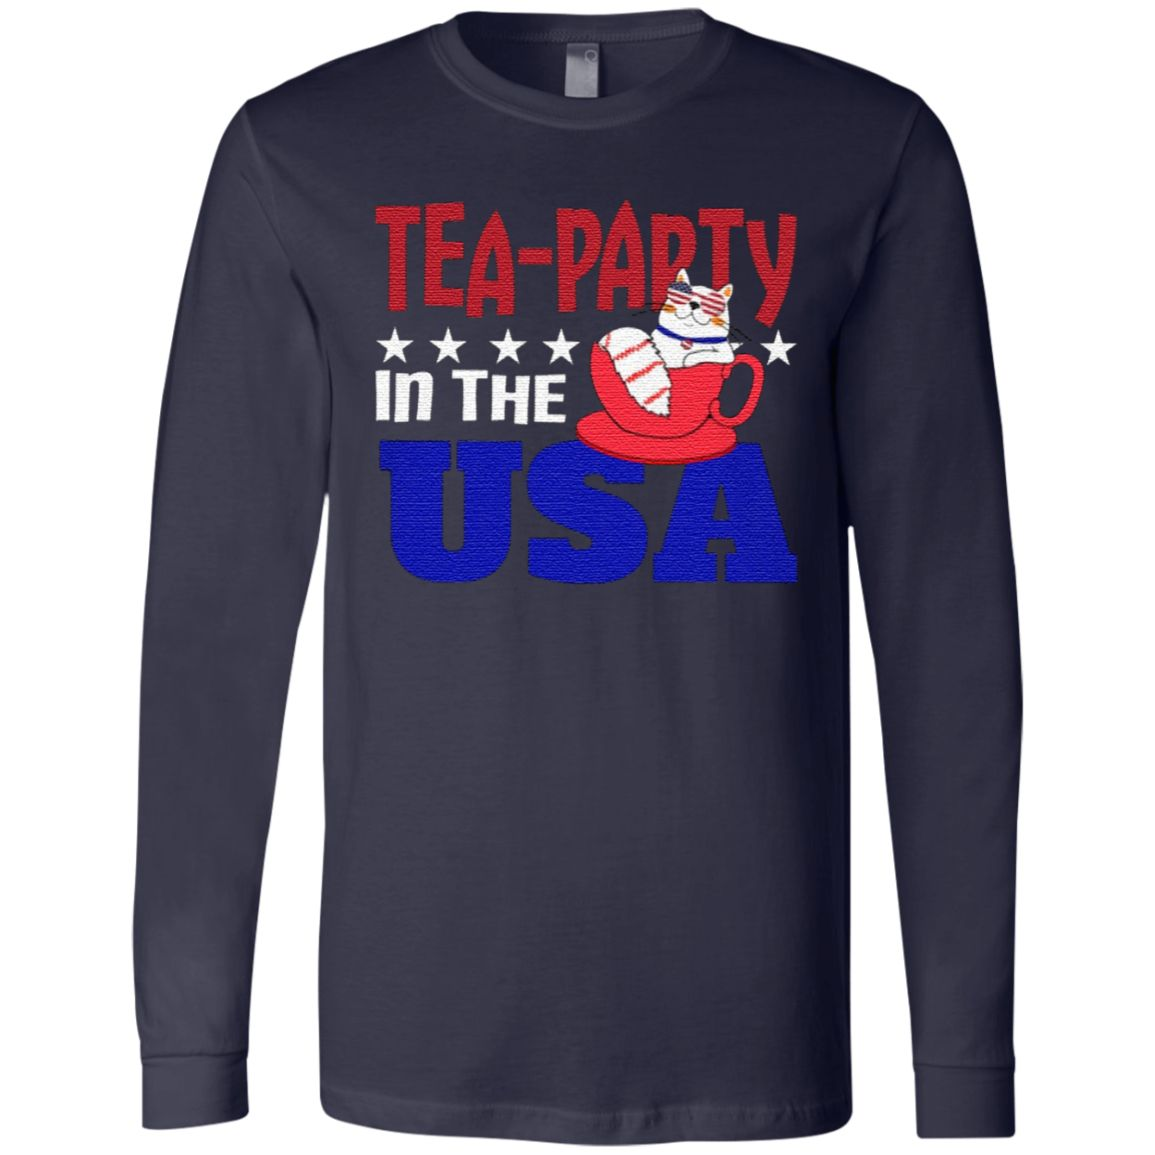 Tea party In The USA t shirt